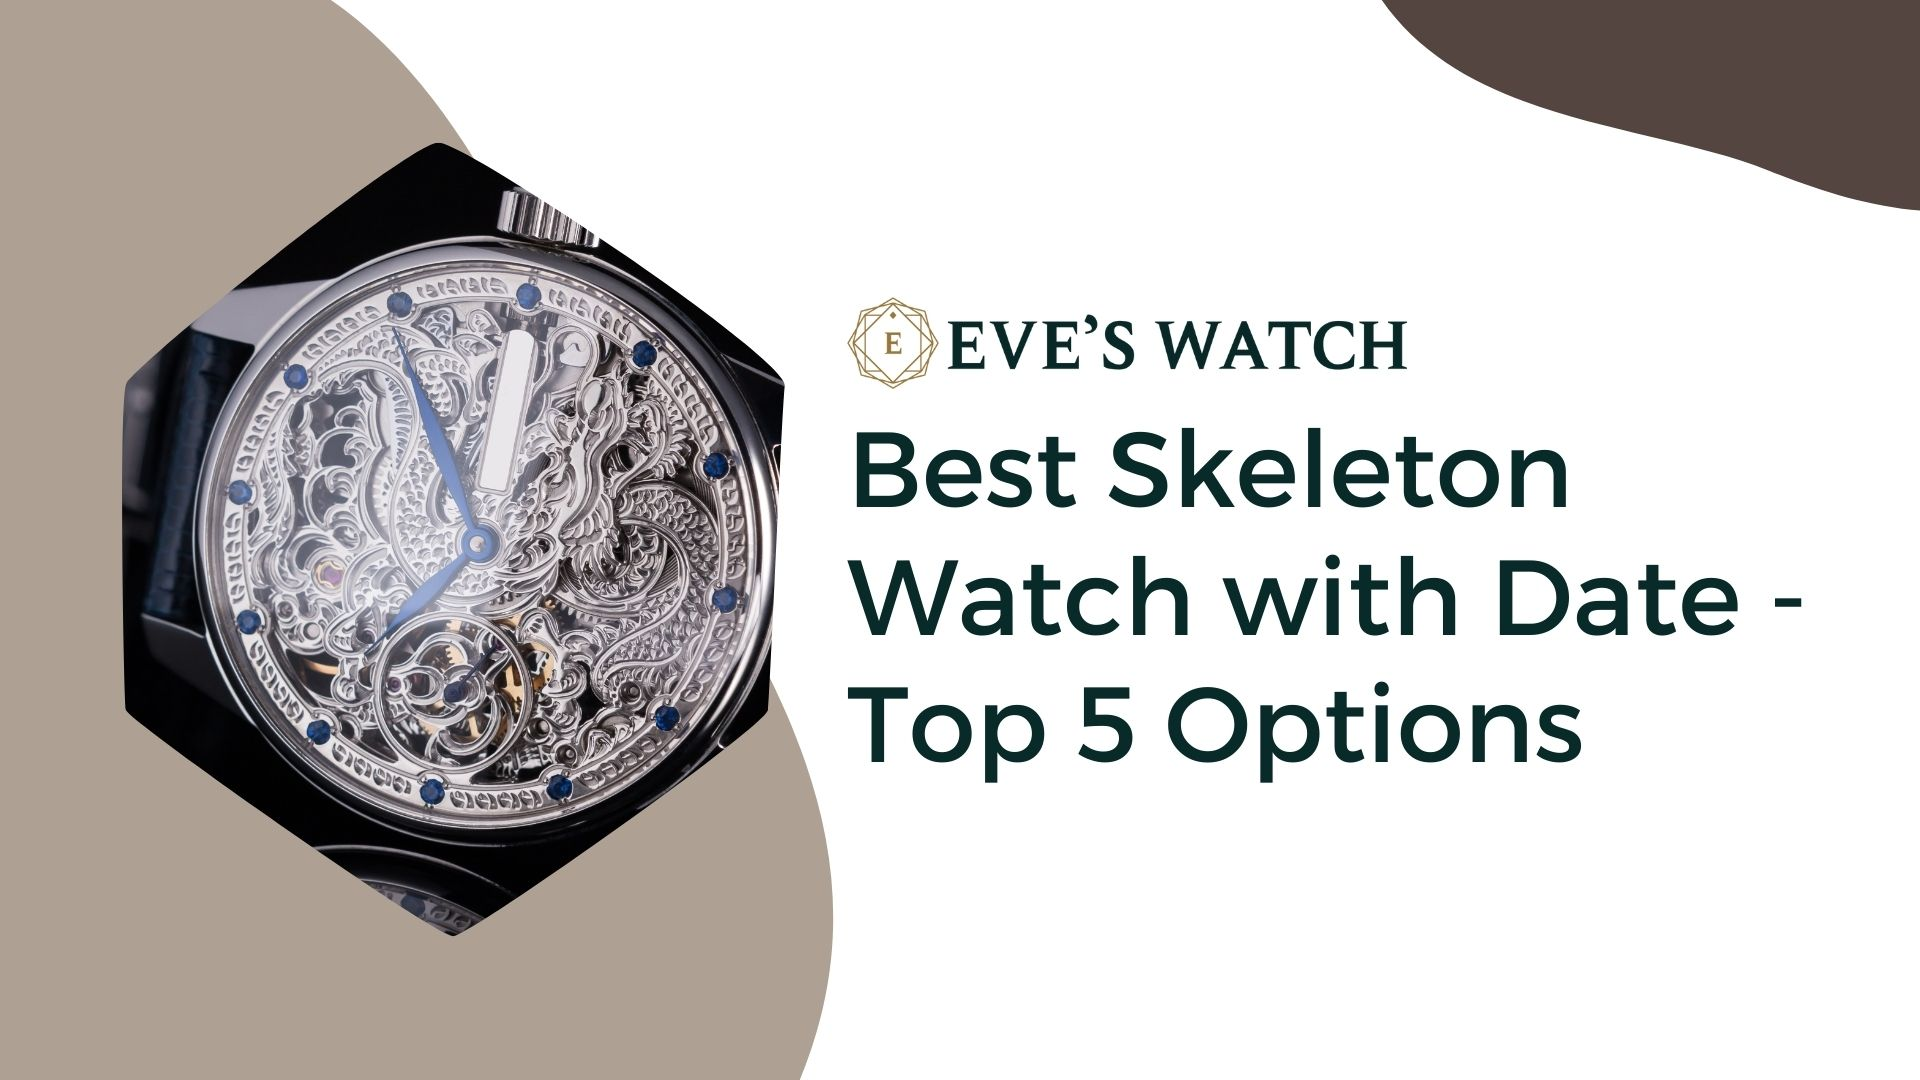 best skeleton watch with date top 5 options